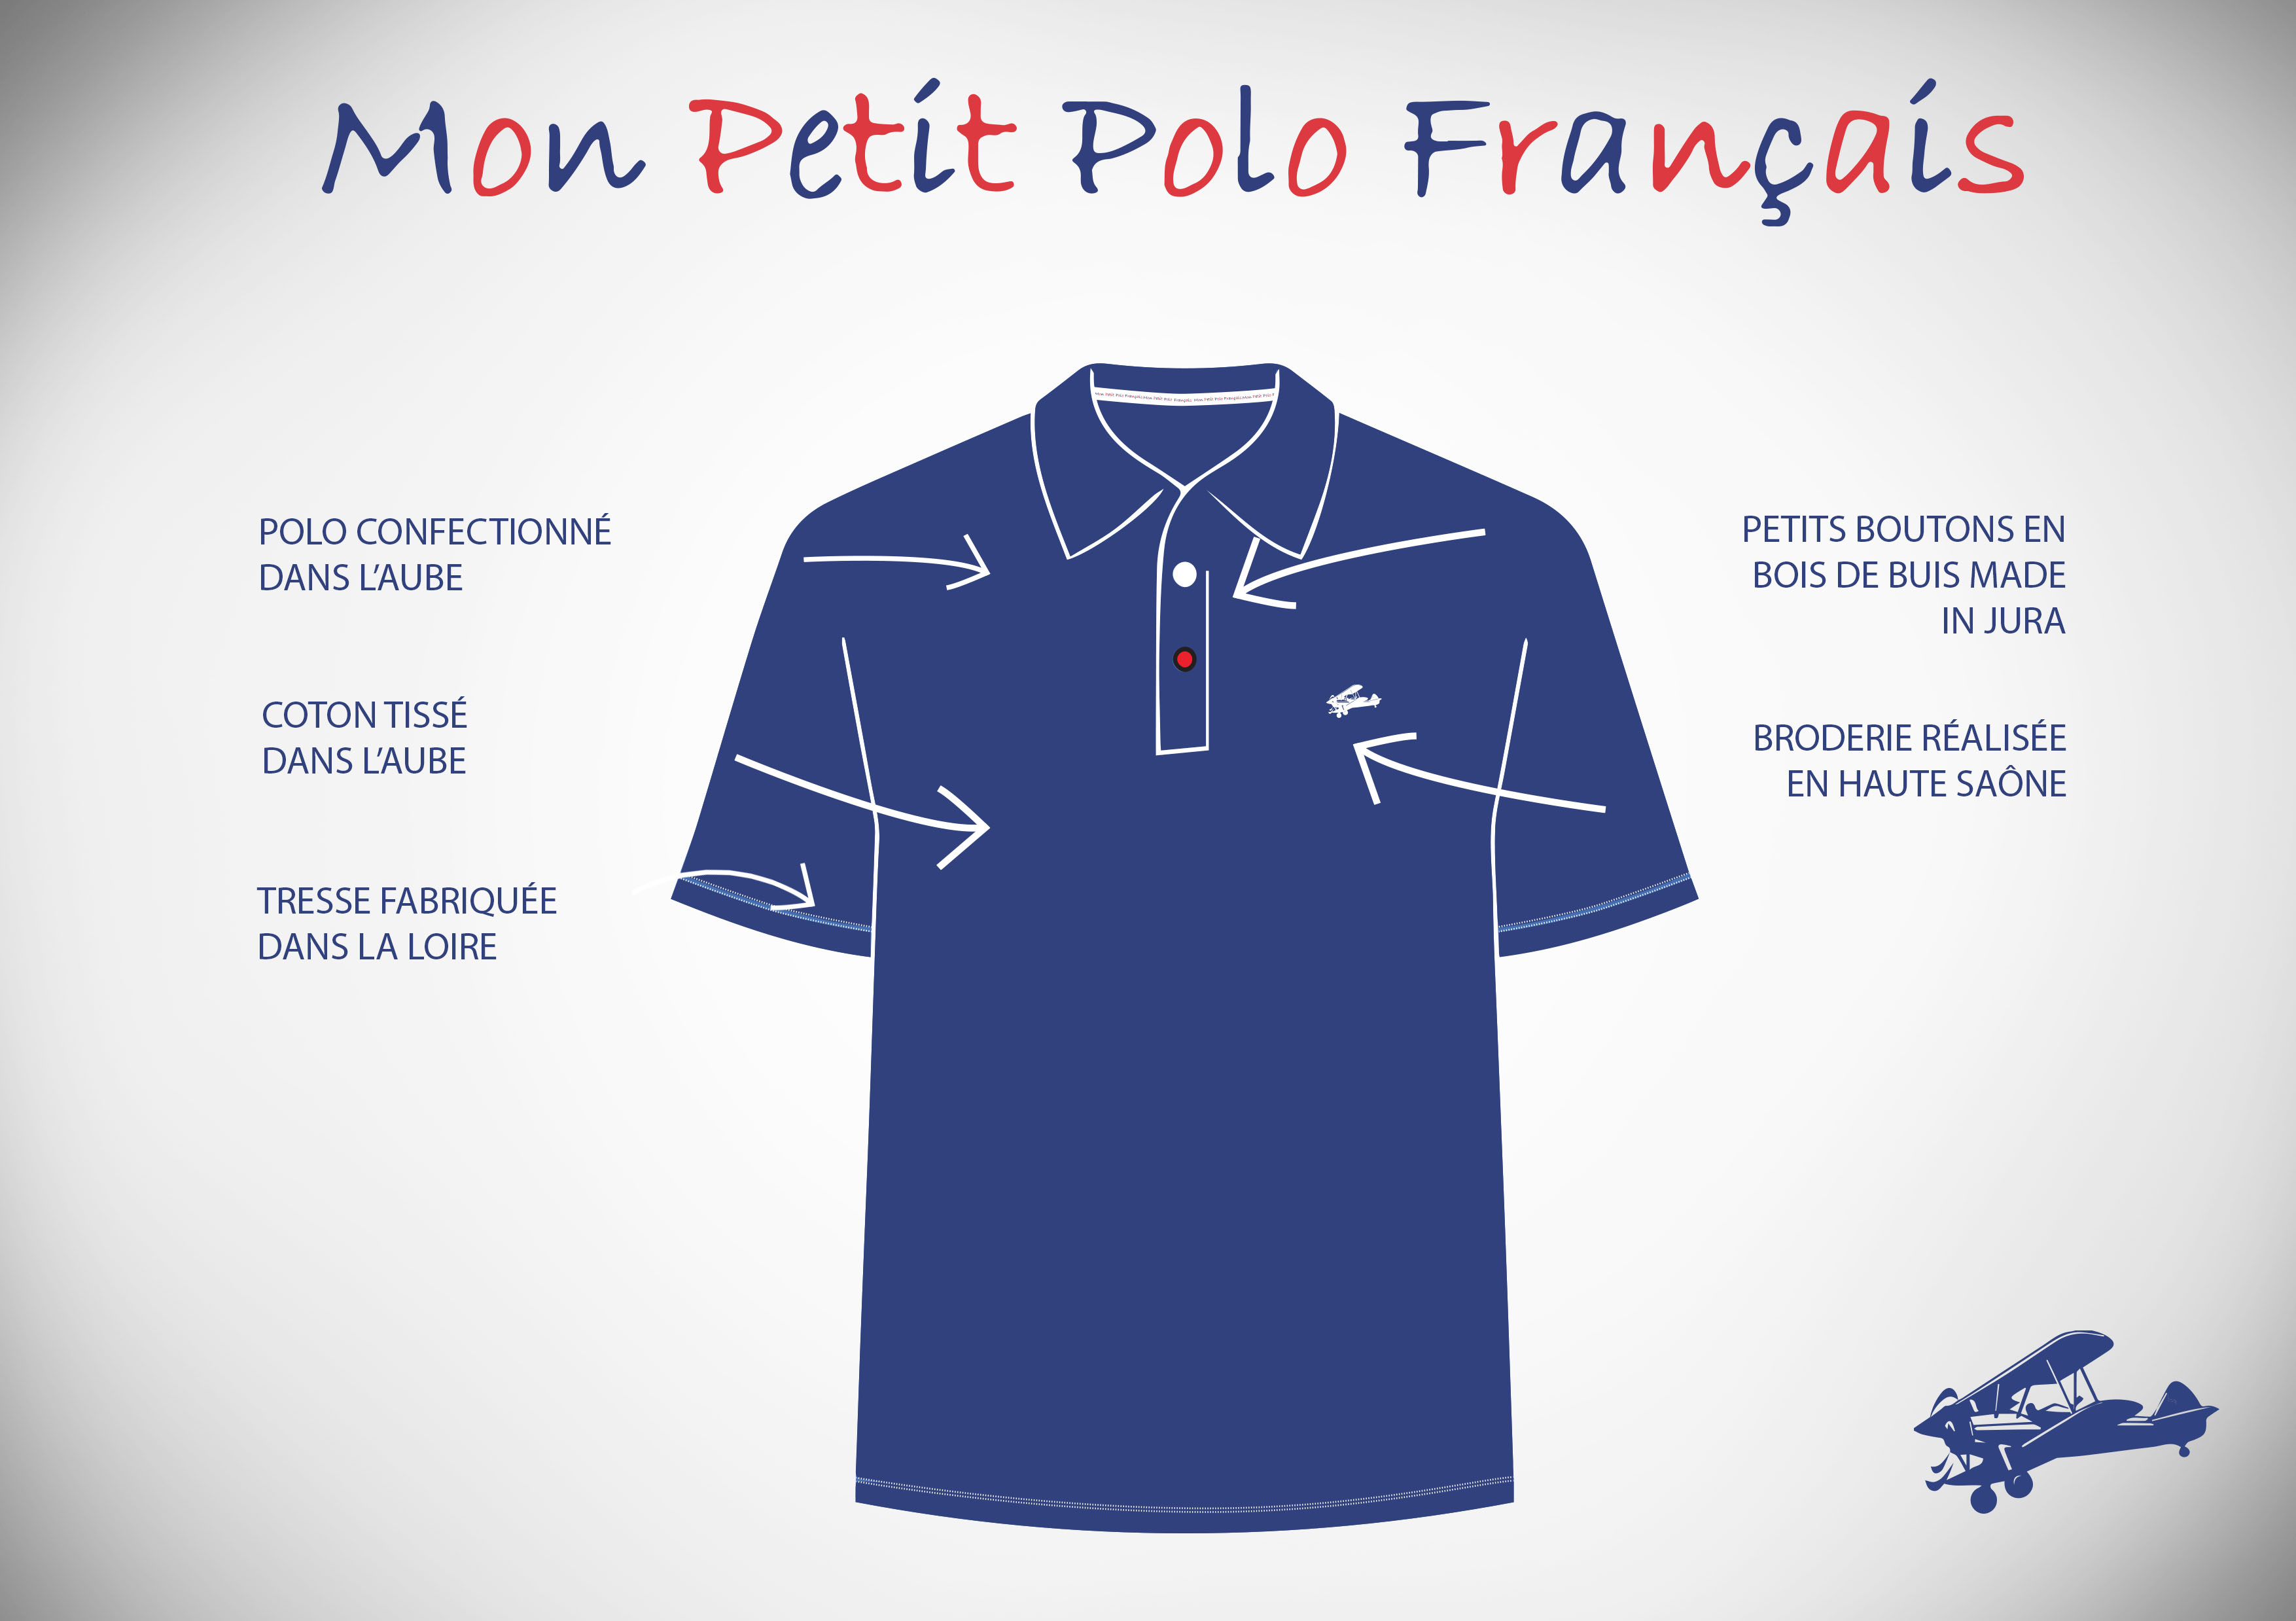 Polo 100% Made in France